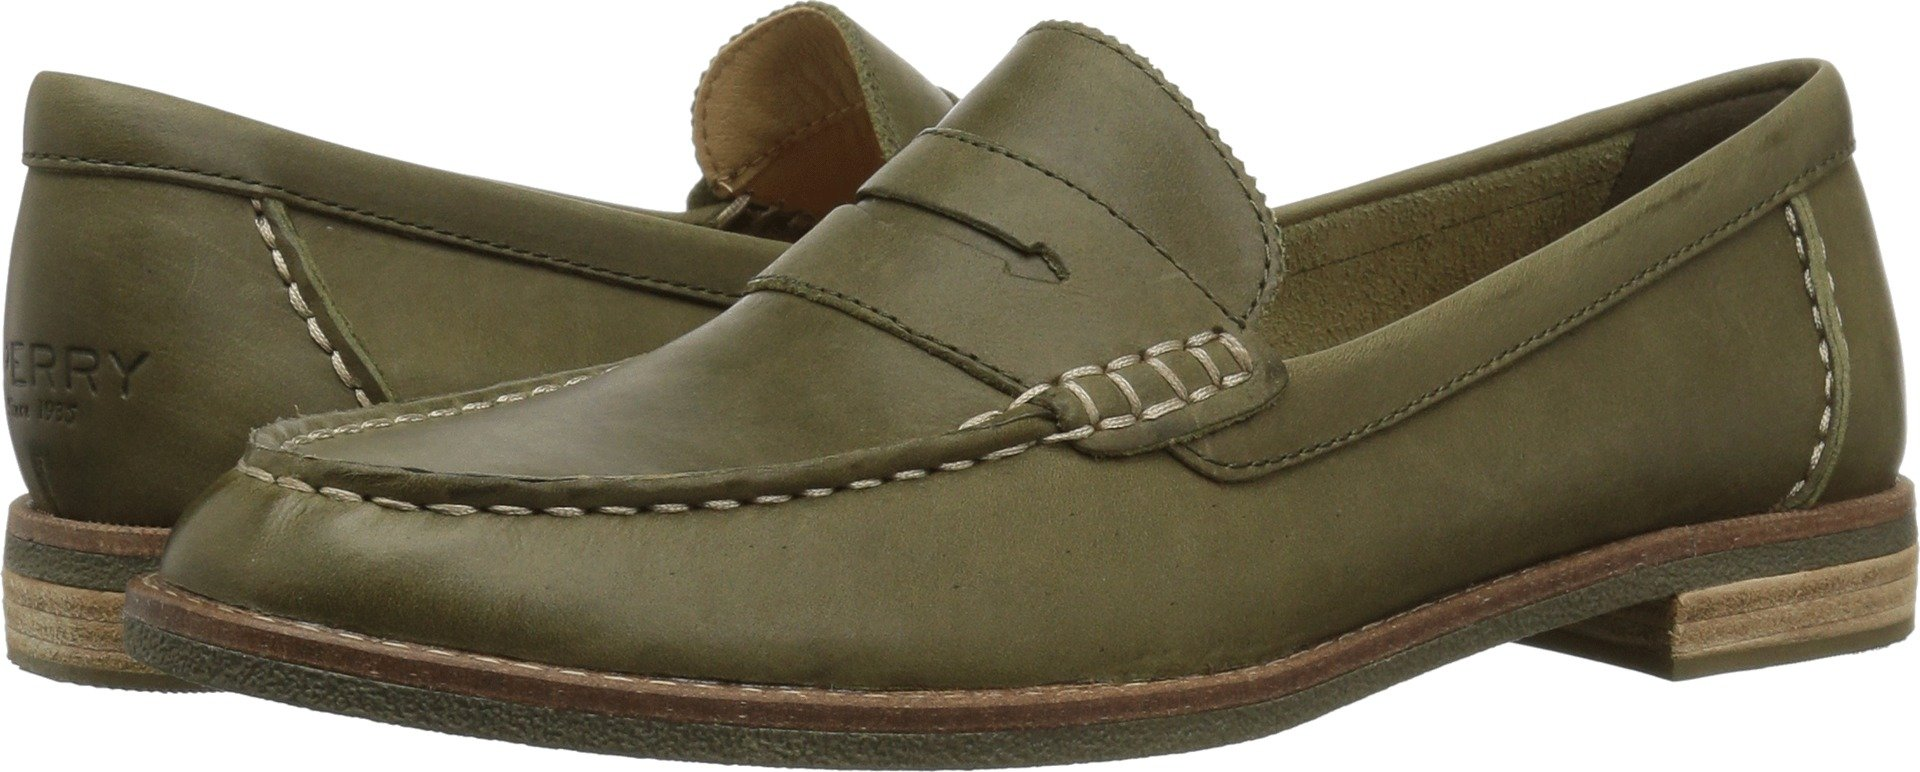 Sperry Top-Sider Women's Seaport Penny Loafer, Olive, 7.5 M US